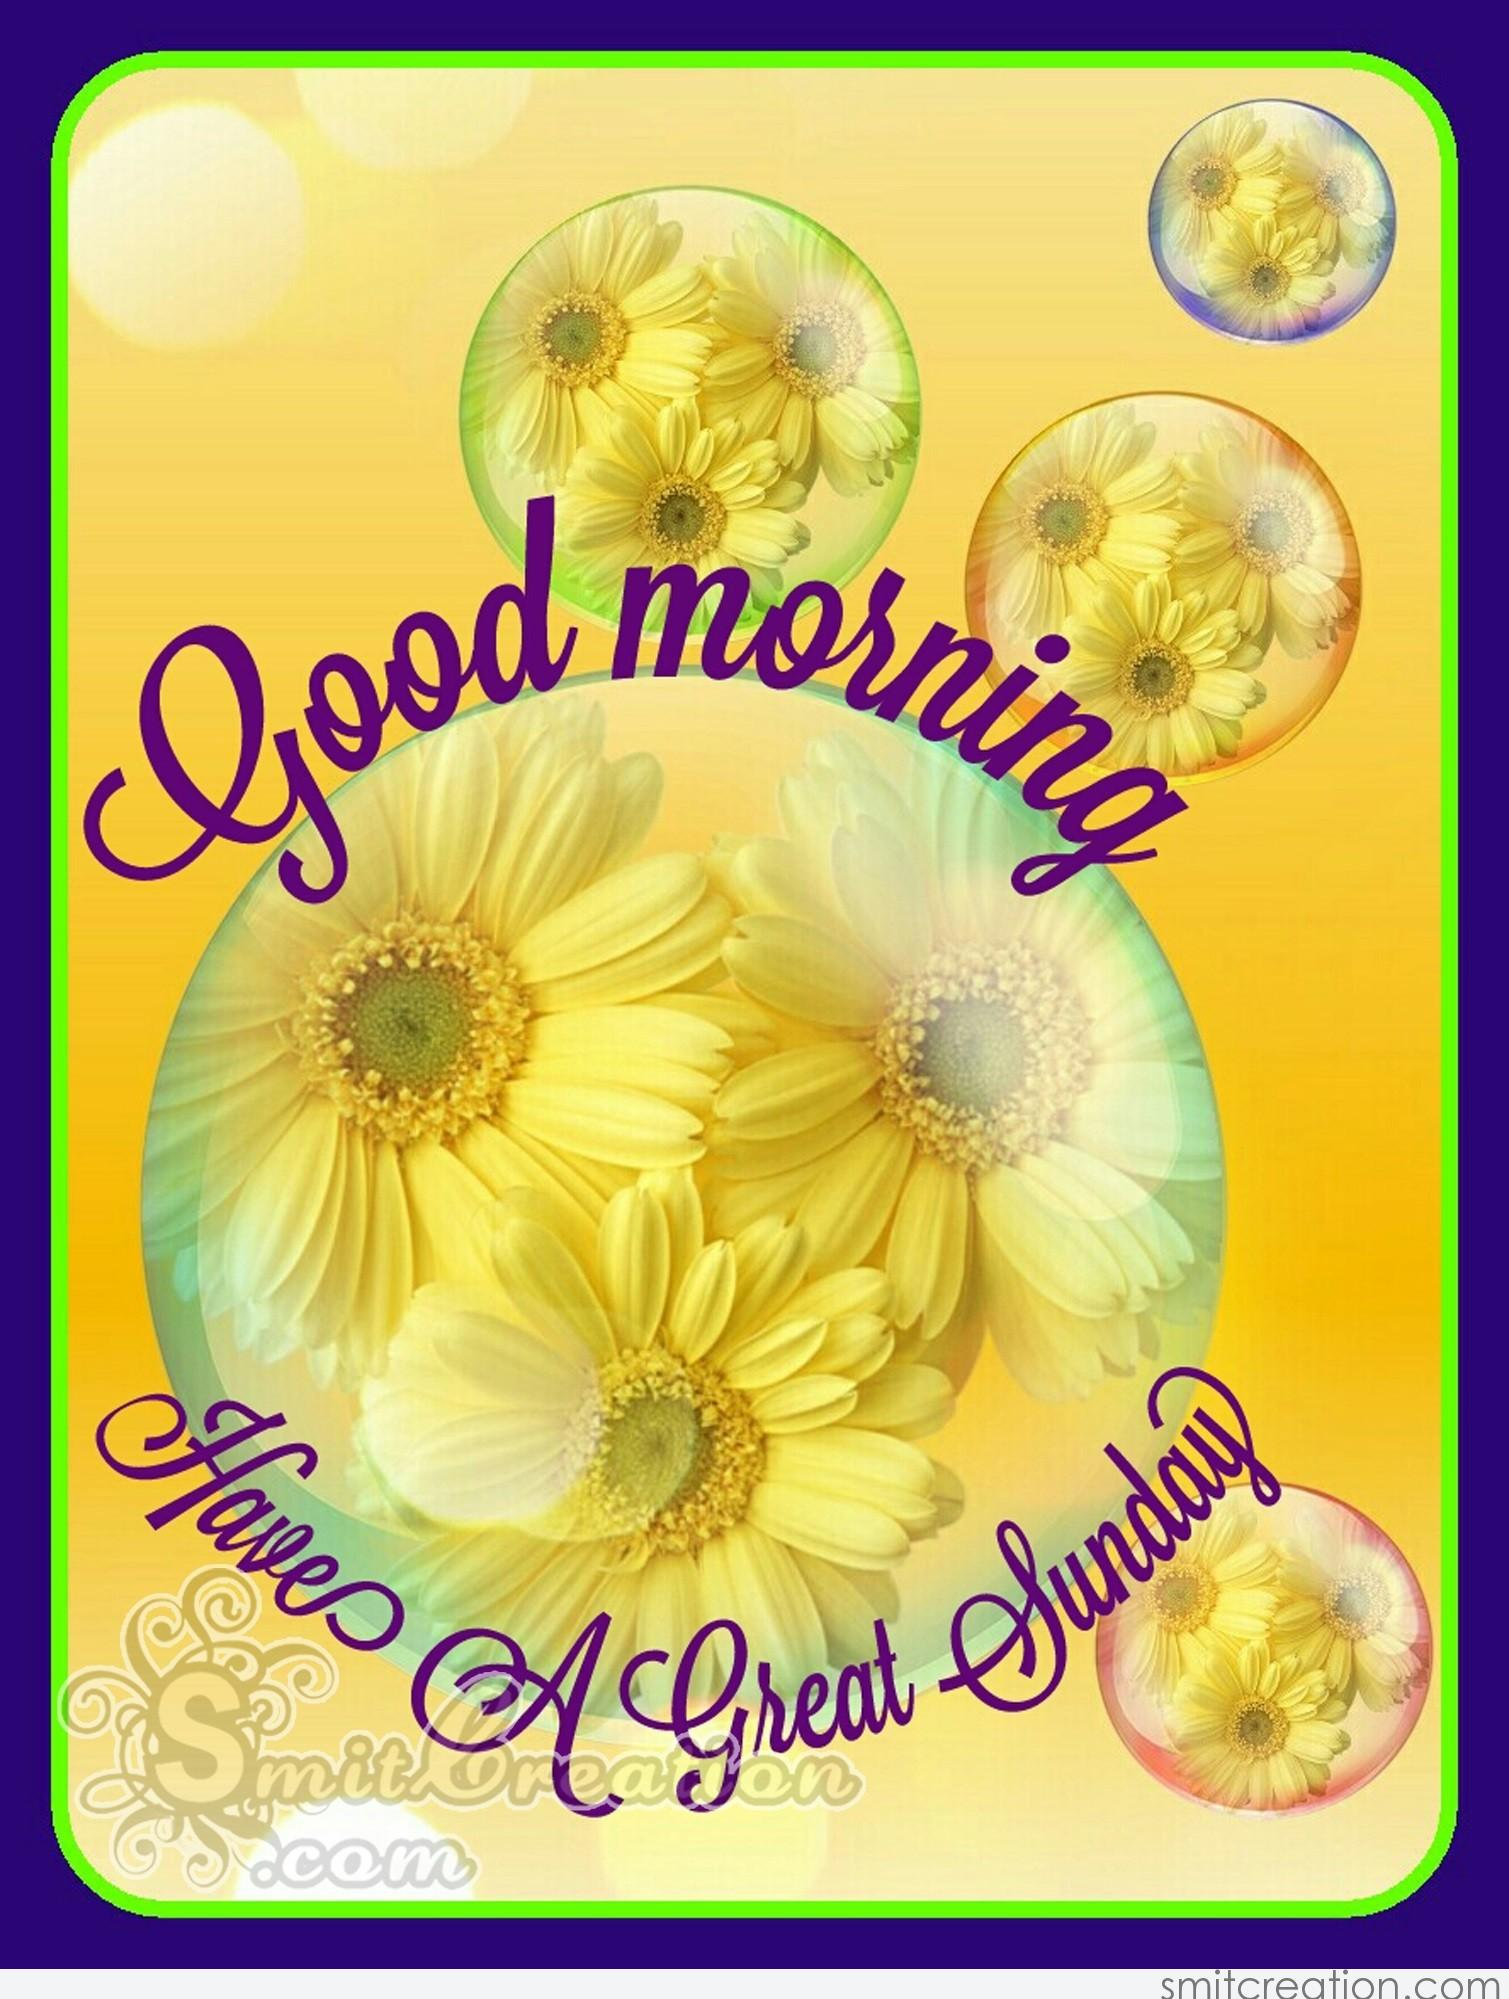 Good Morning Have A Great Sunday Pics Archidev